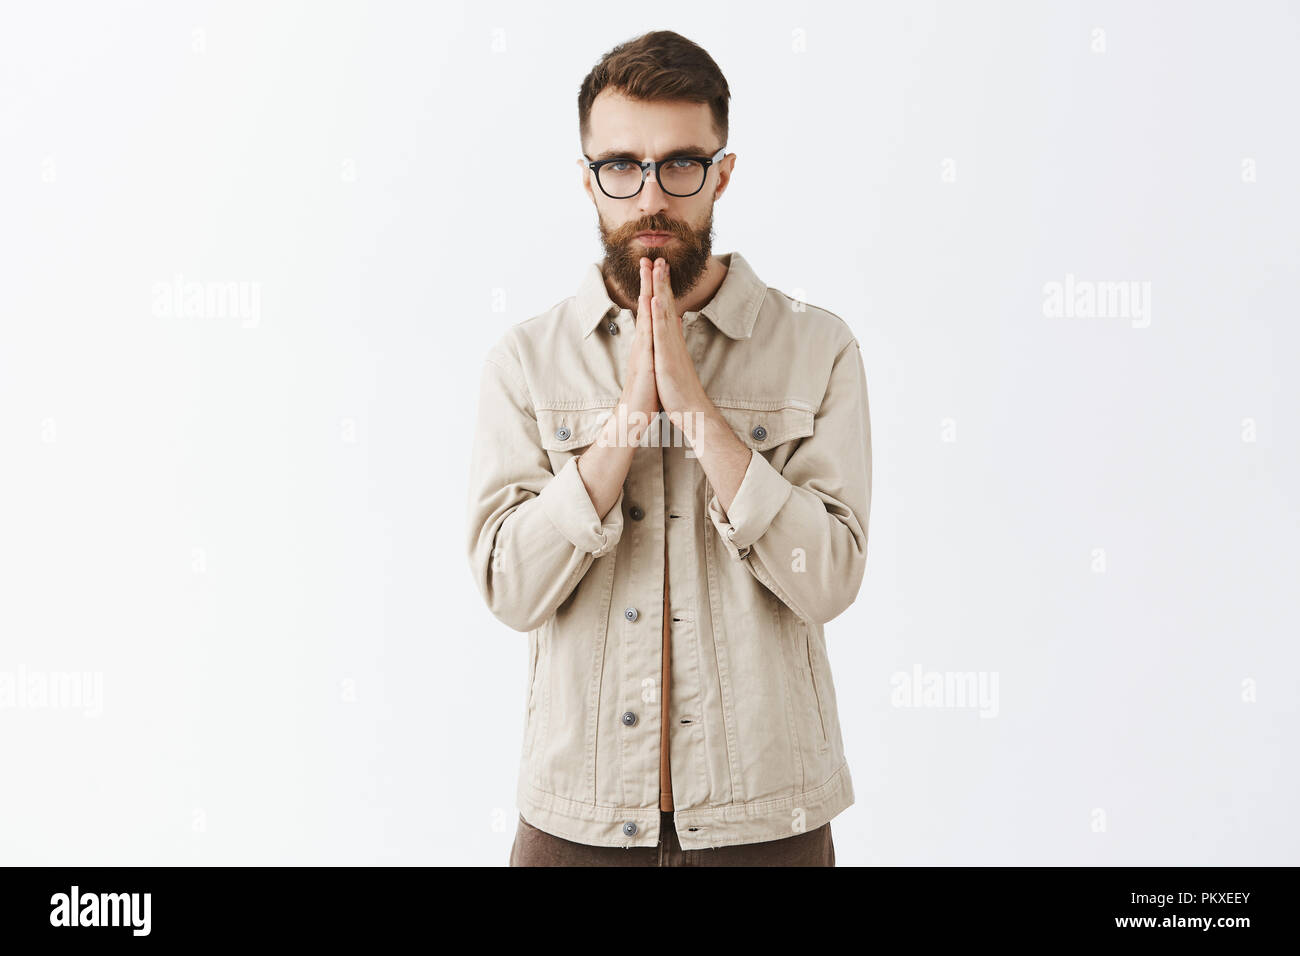 Indoor shot of gloomy unhappy and sad adult man with long beard in beige outdoor jacket holding hands in pray standing with serious unemotional expression begging for money or praying - Stock Image